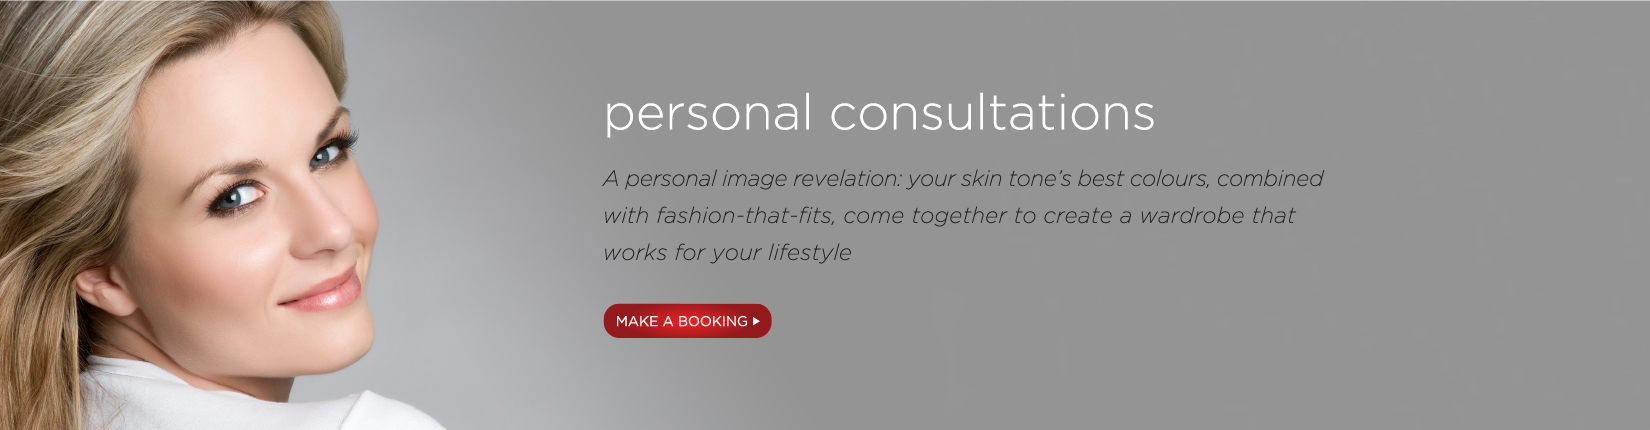 4-personal-consultations-a-button